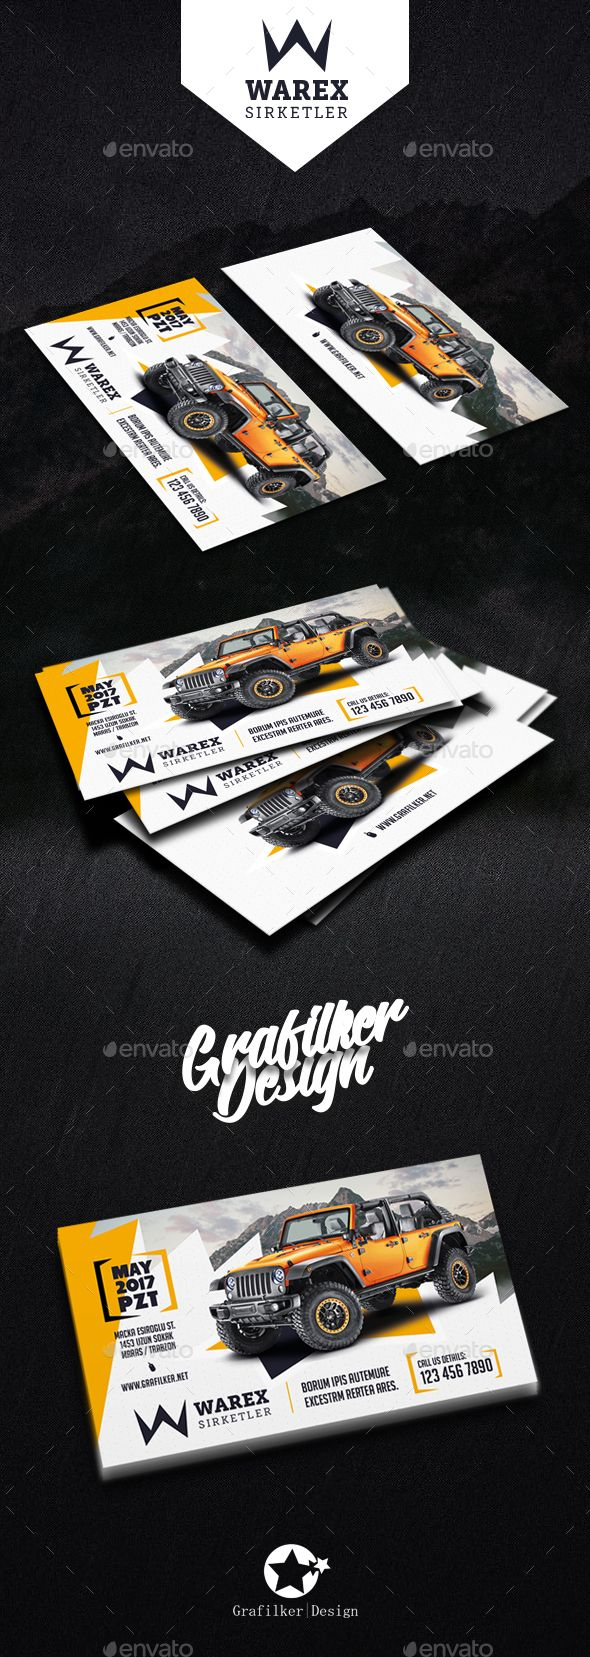 Car Sales Business Card Templates Corporate Business Cards Download Here Https Graphicri Corporate Business Card Business Card Maker Make Business Cards